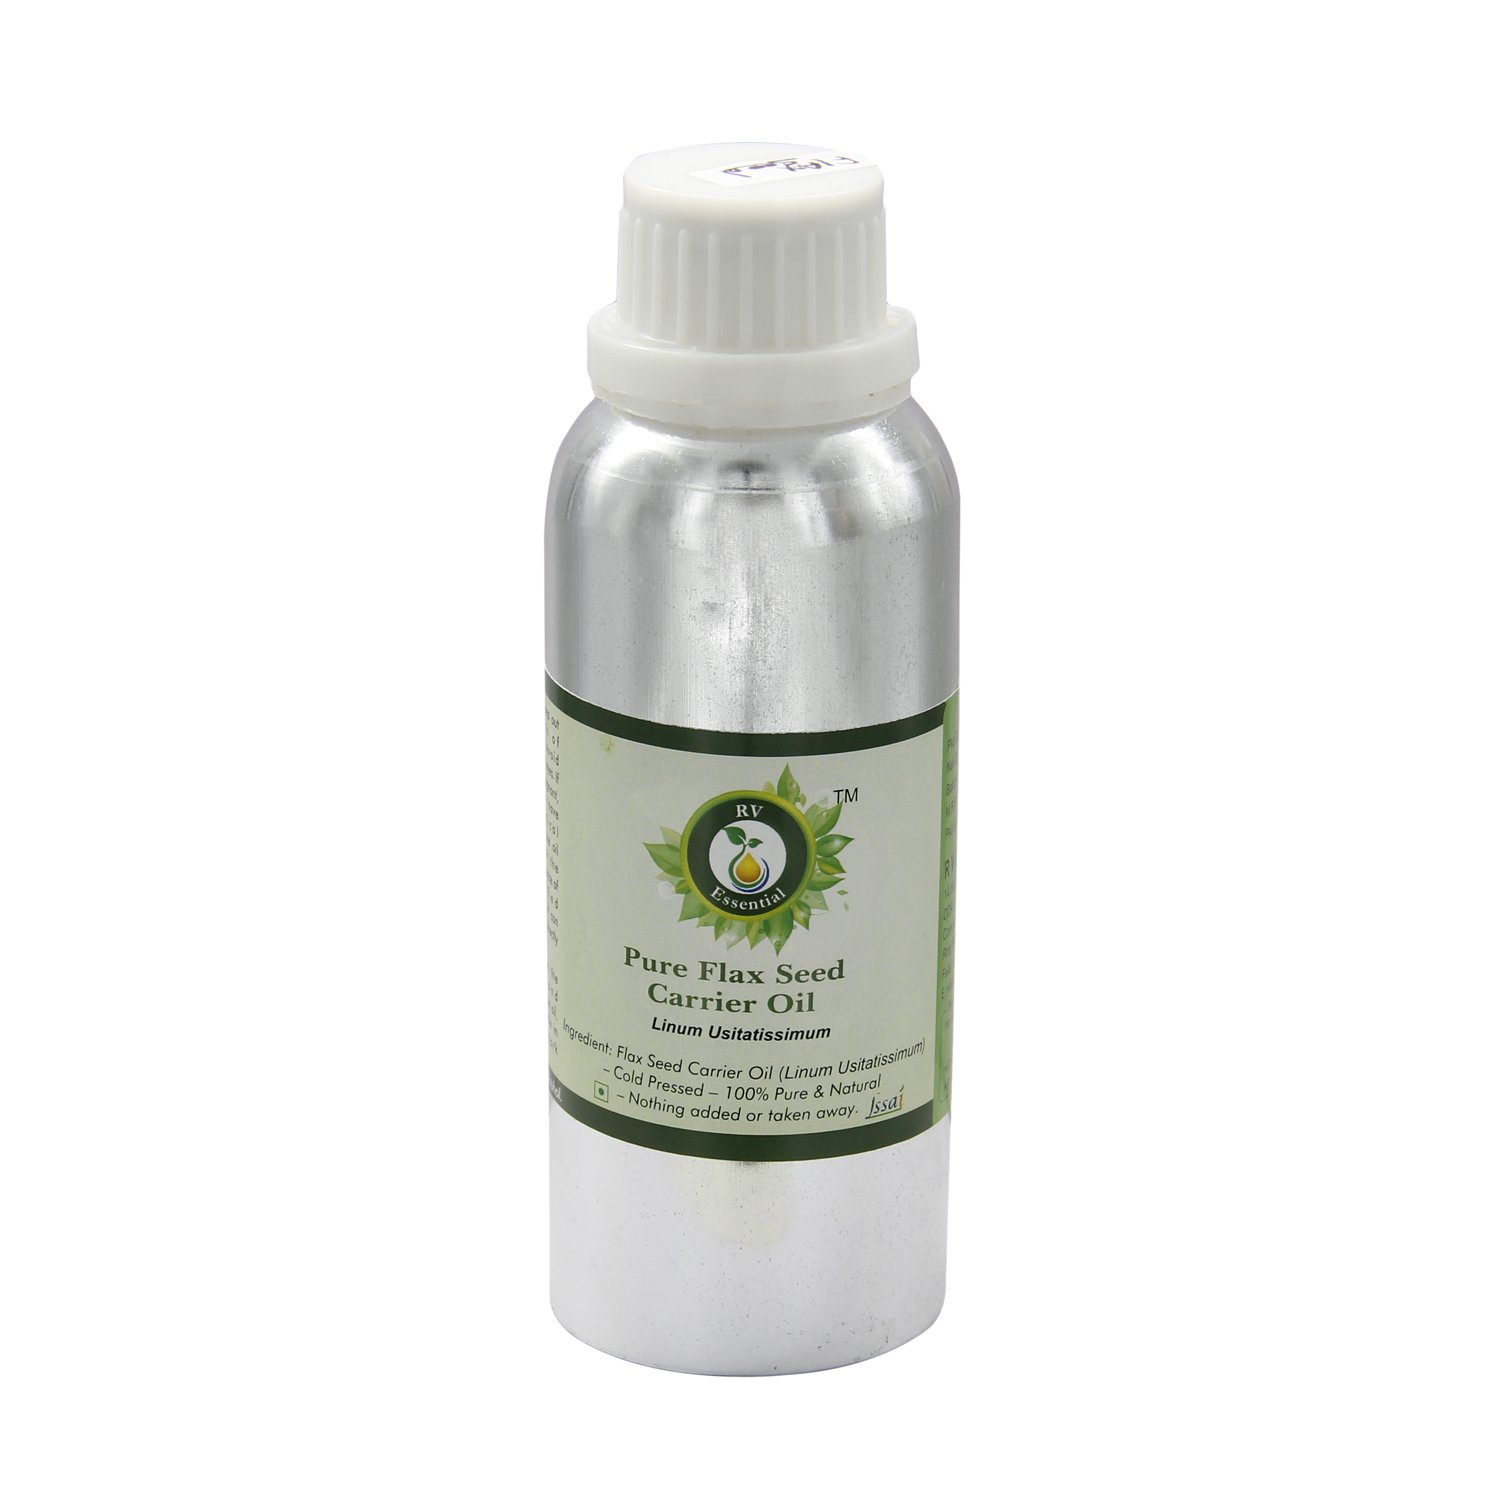 R V Max 76% OFF Essential Popular shop is the lowest price challenge Pure Flax Seed Carrier 630ml - Usi Linum 21oz Oil